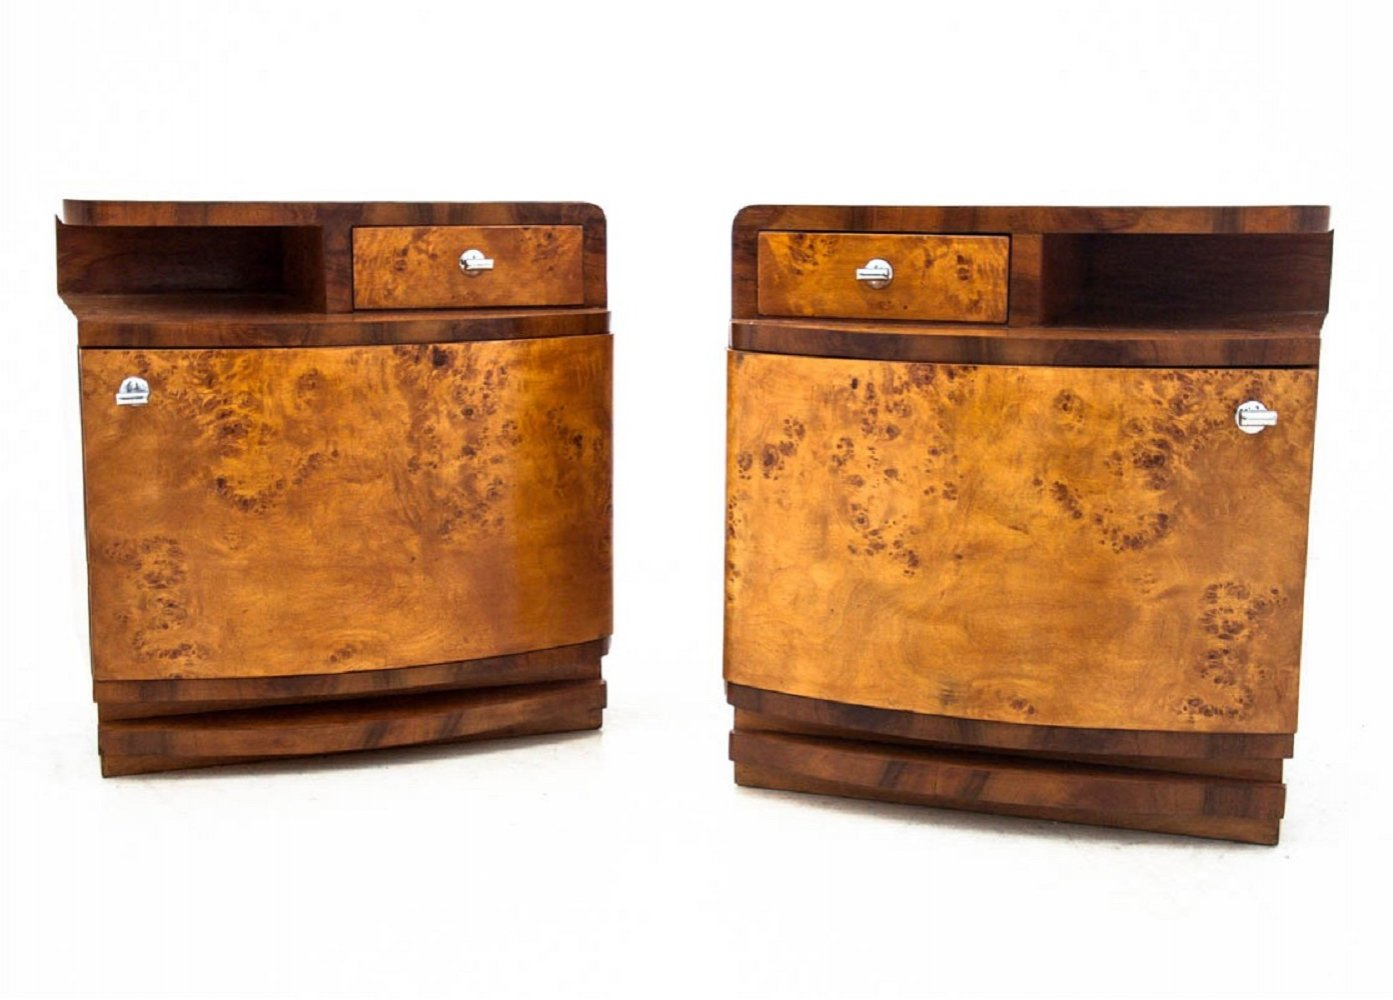 Pair of Art Deco bedside tables, Poland 1950s